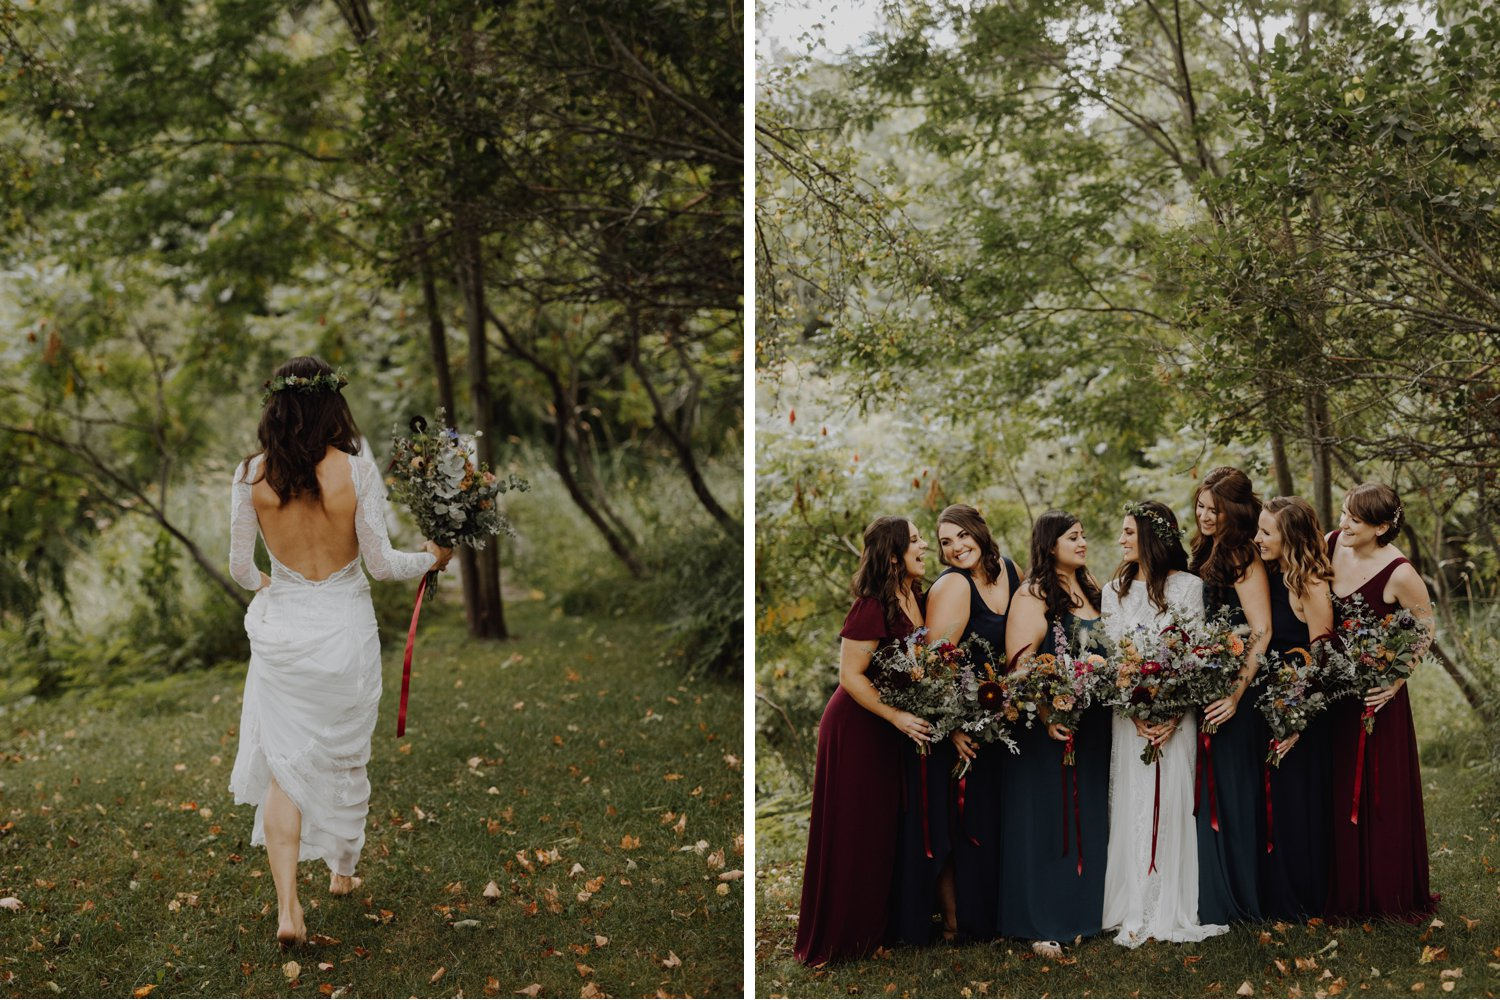 Outdoor Camp Wedding - bridal party portraits